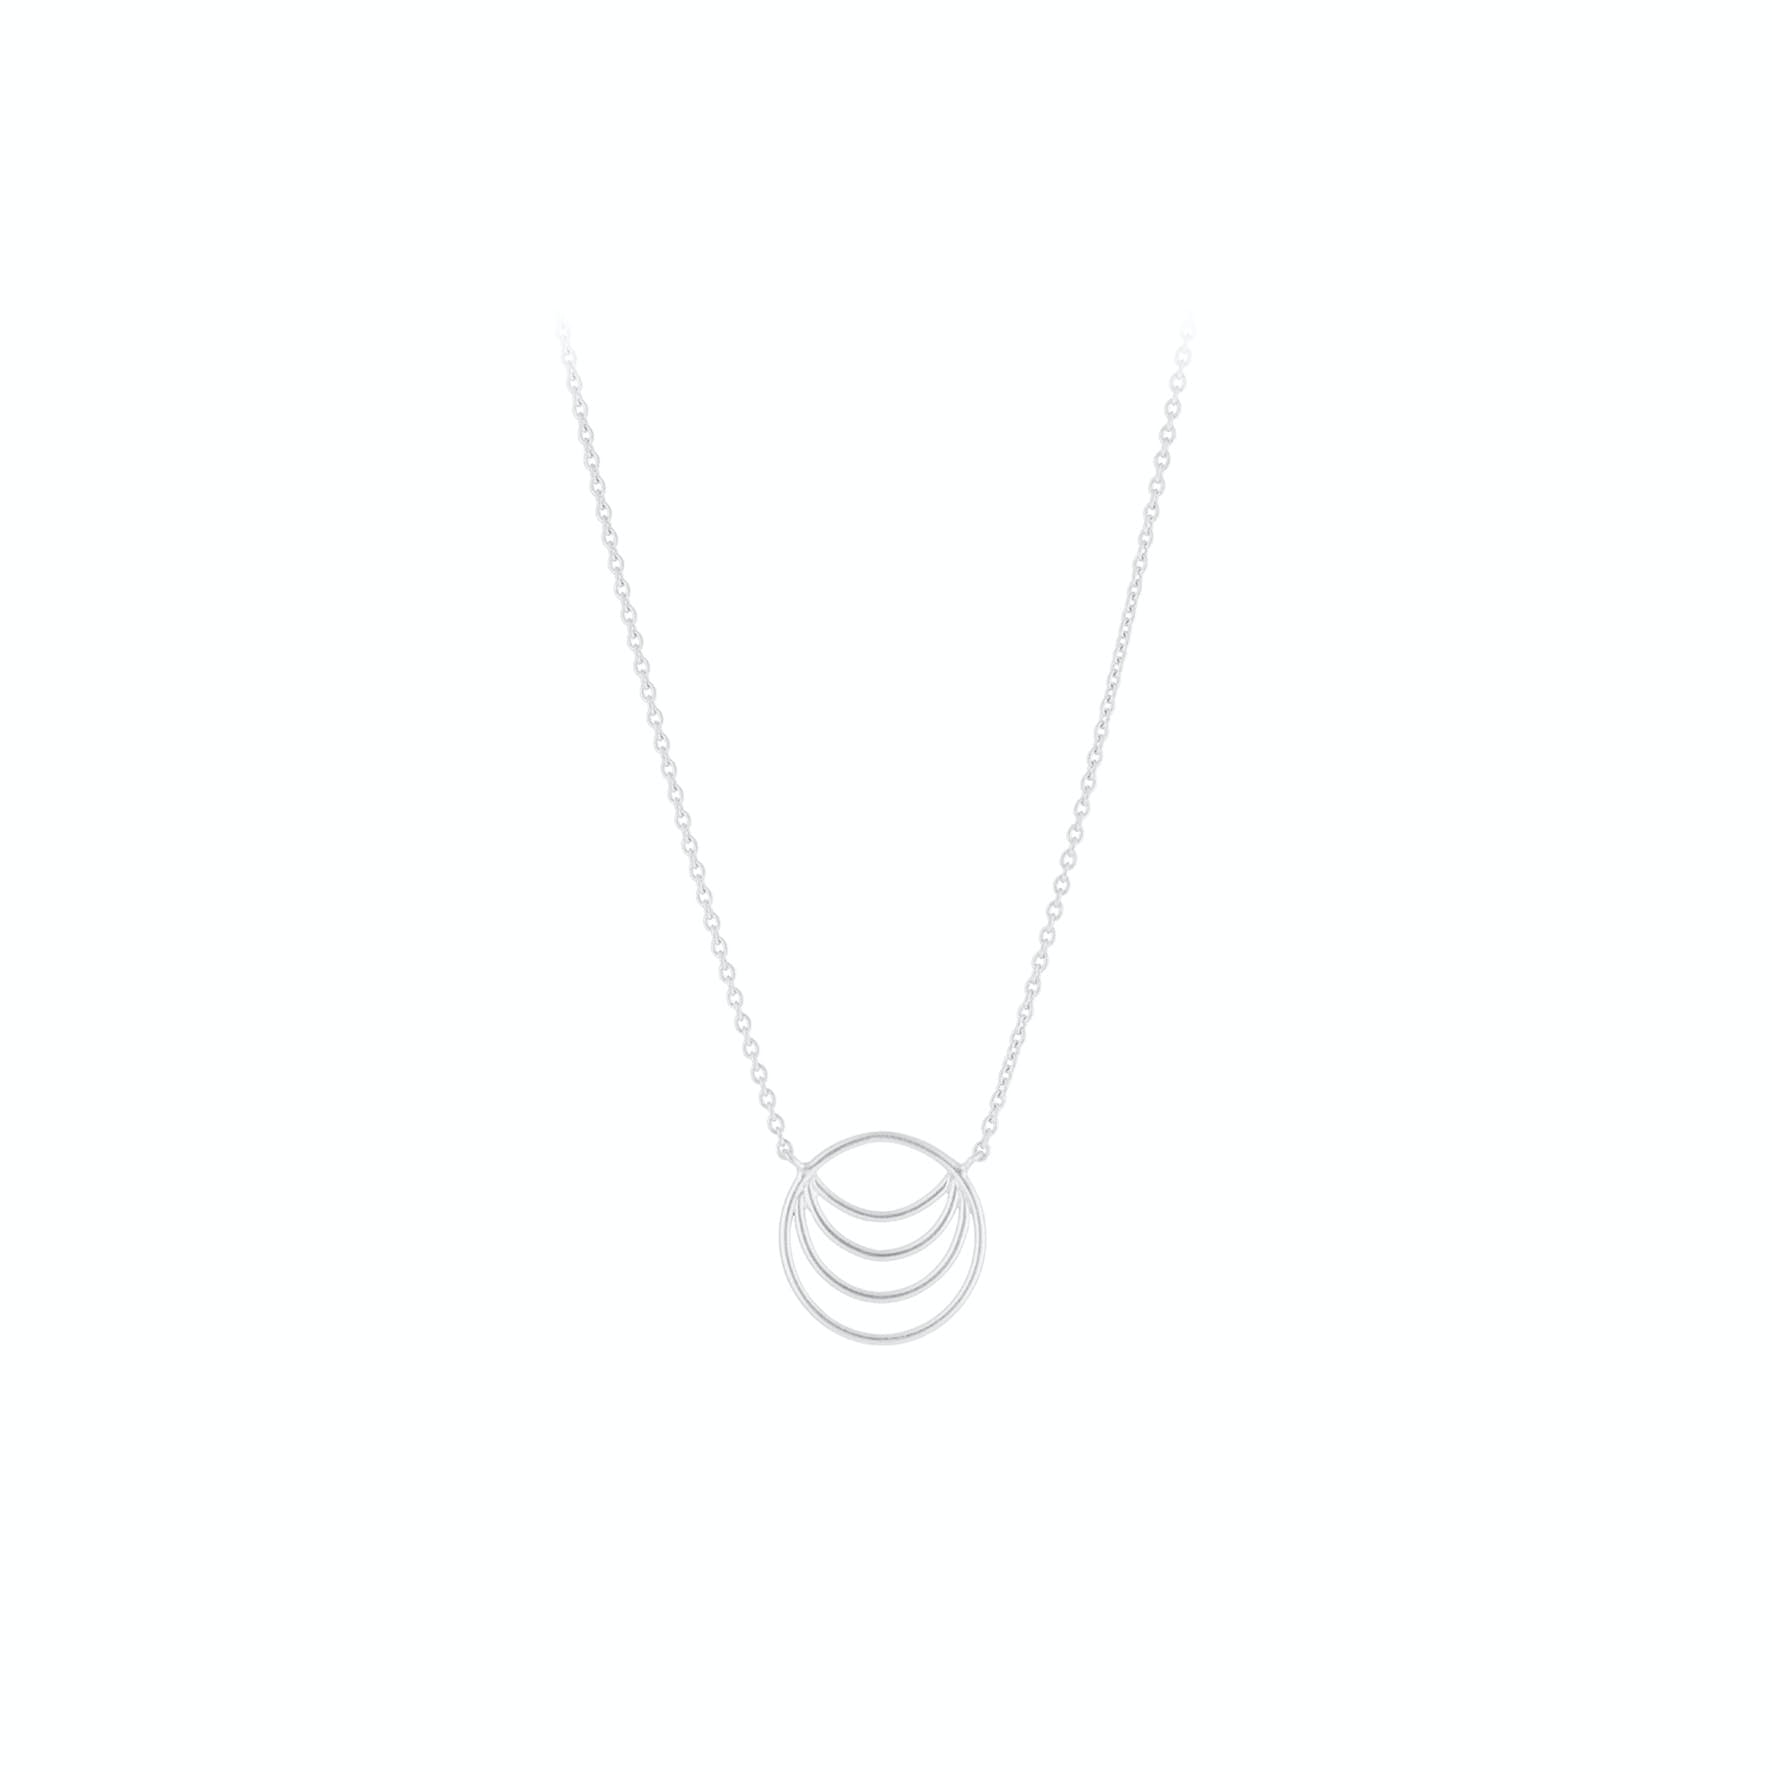 Silhouette Necklace von Pernille Corydon in Silber Sterling 925